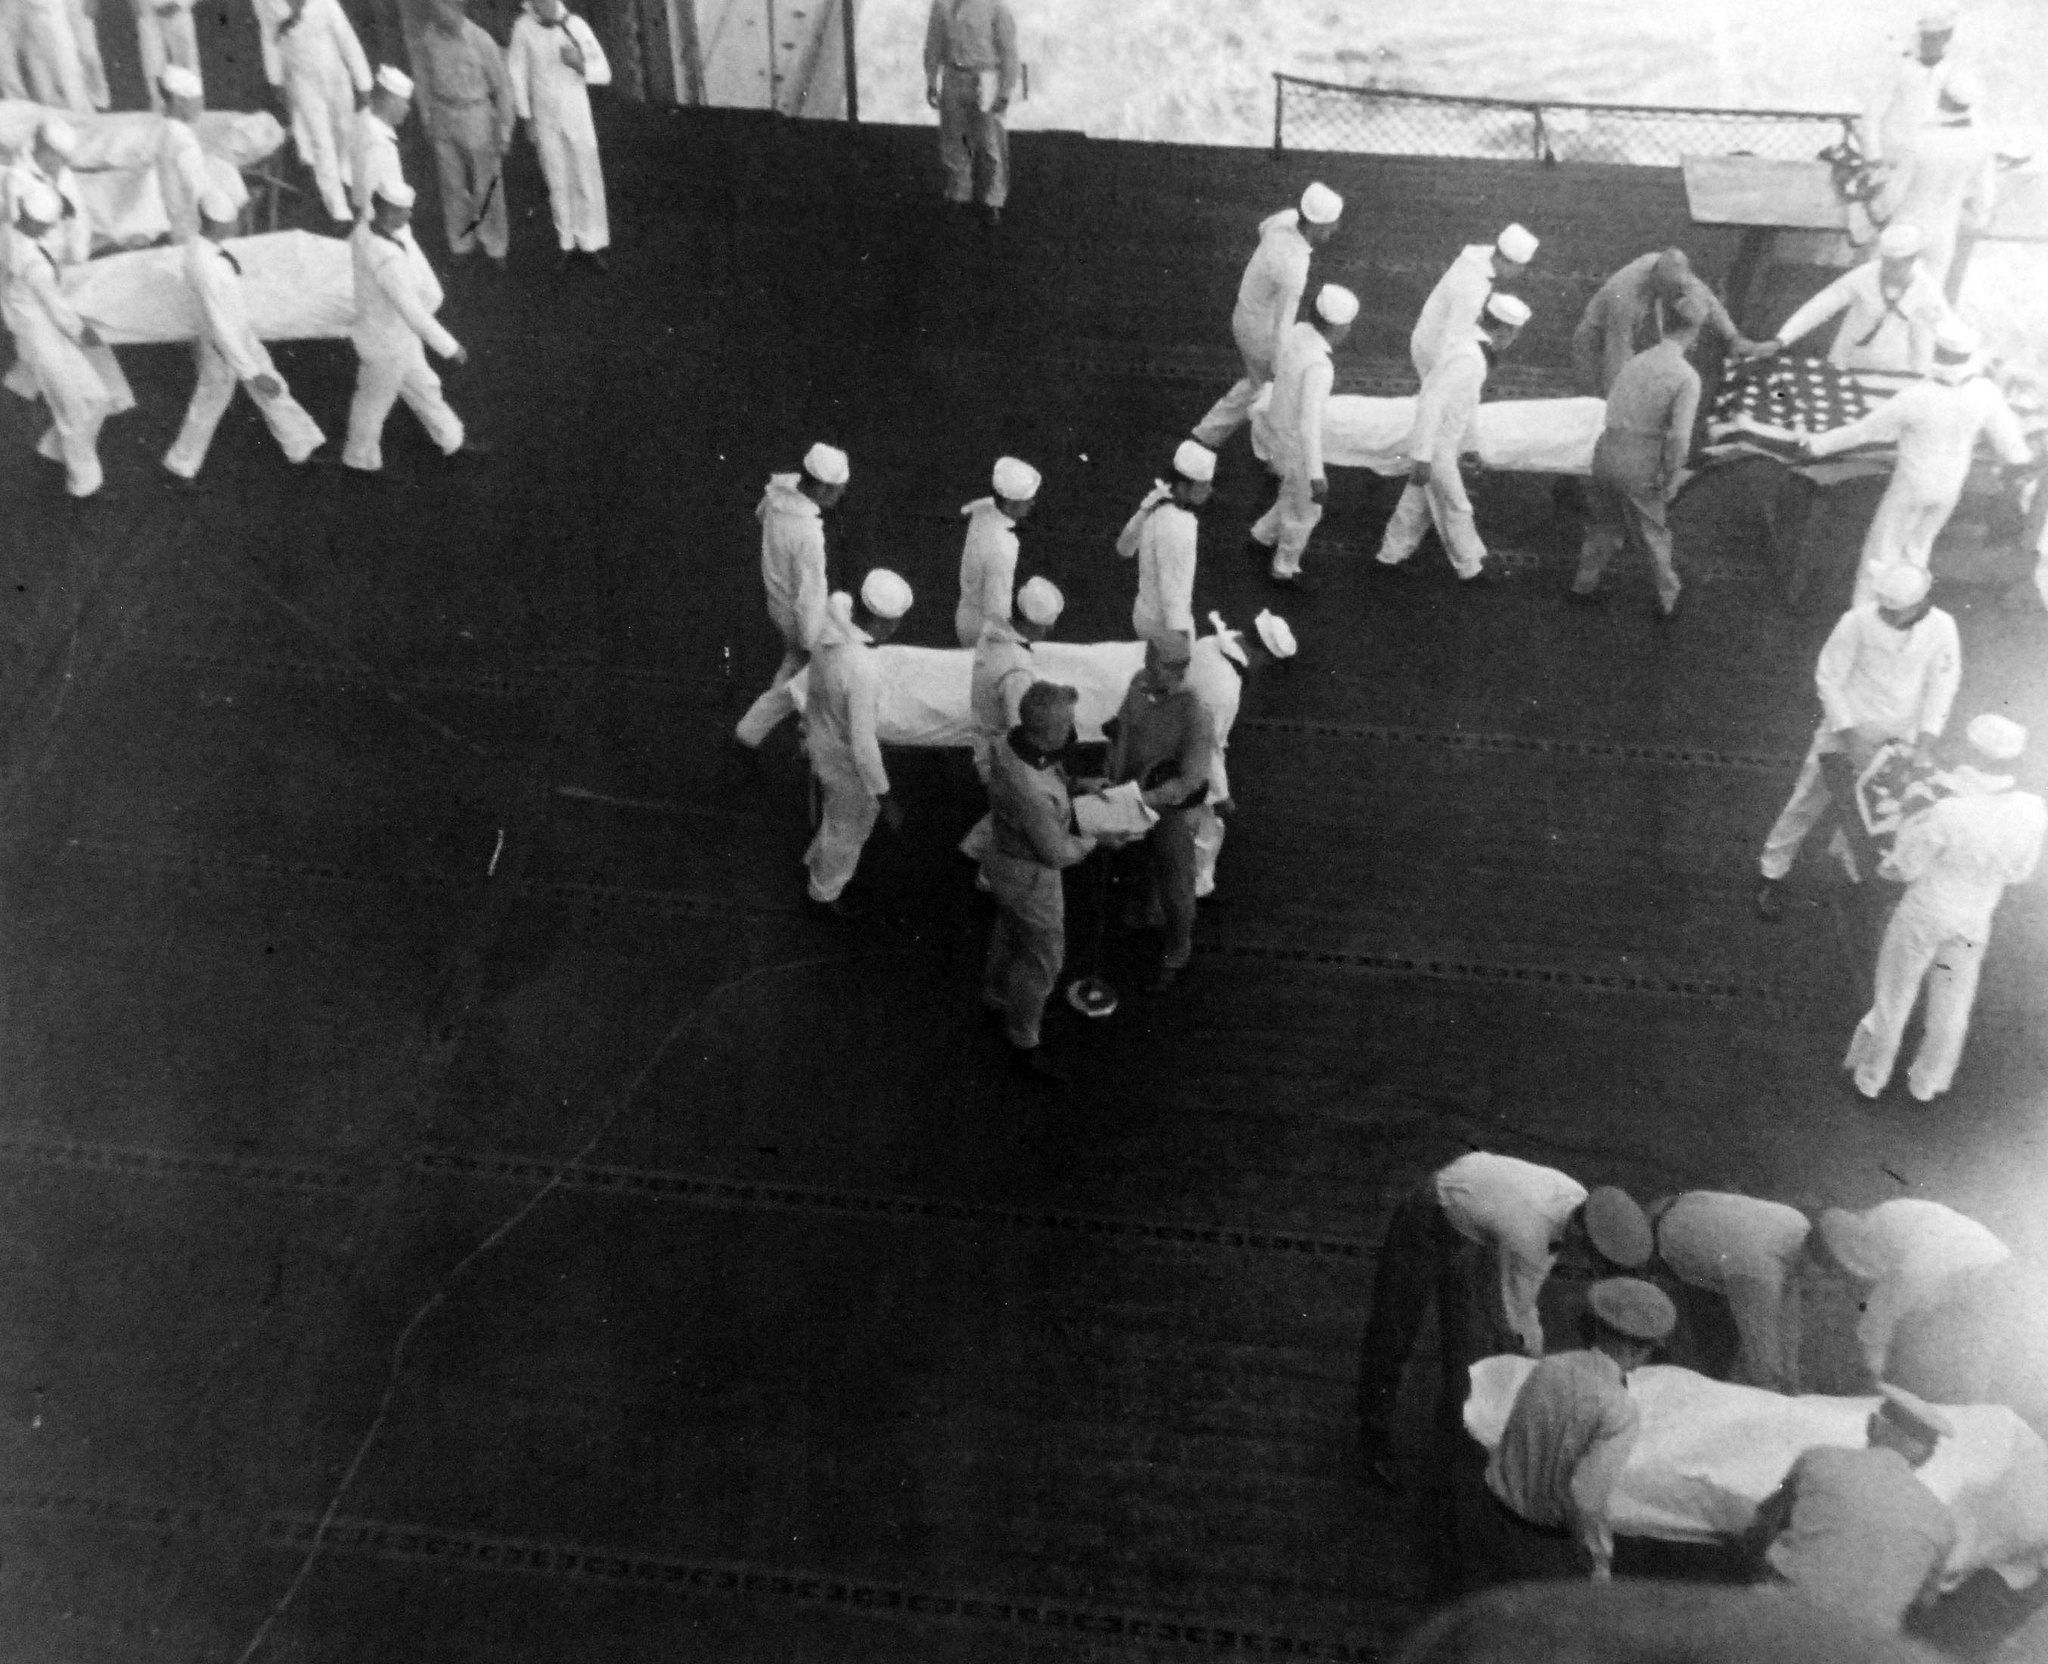 Navy casualties from a kamikaze attack on an Essex-class carrier are buried at sea in a moving ceremony. Released June 28, 1945. Official U.S. Navy photograph, now in the collections of the National Archives.